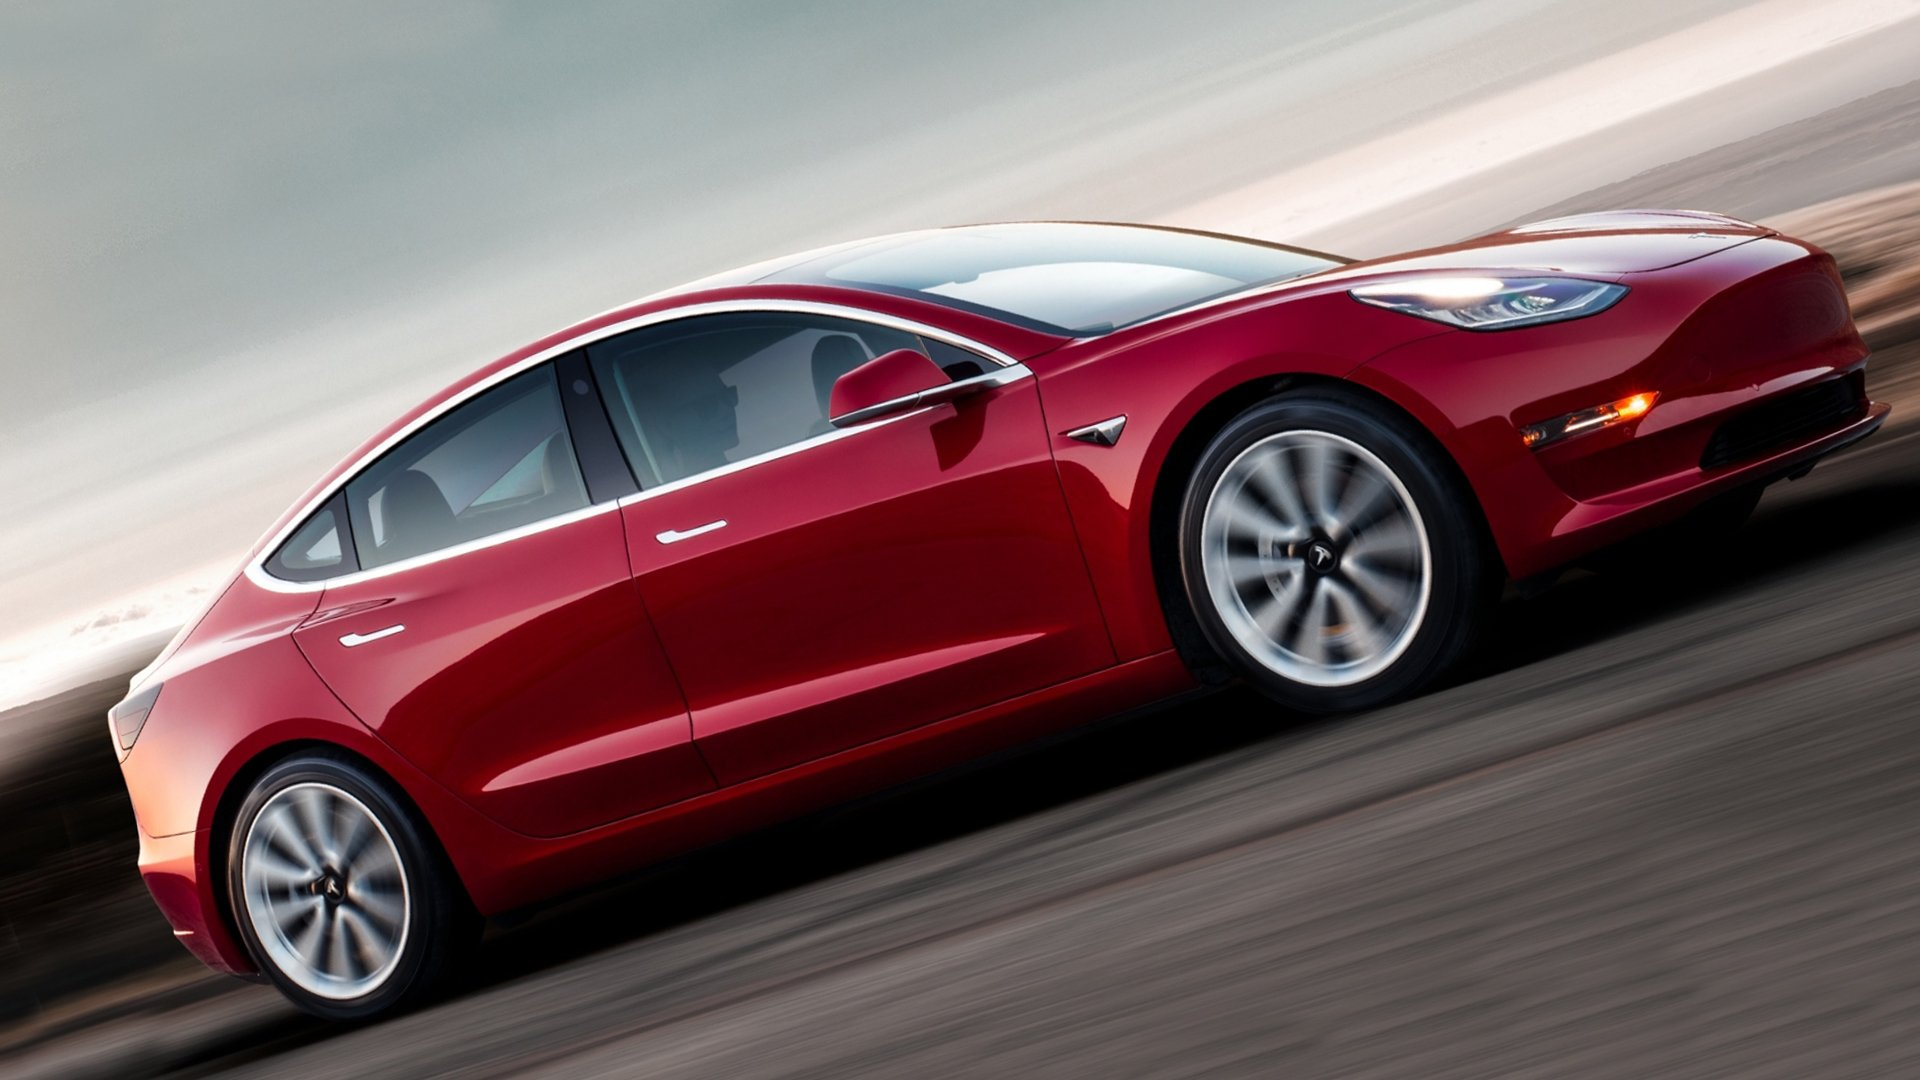 Photo Gallery 2019 Tesla Model 3 HD